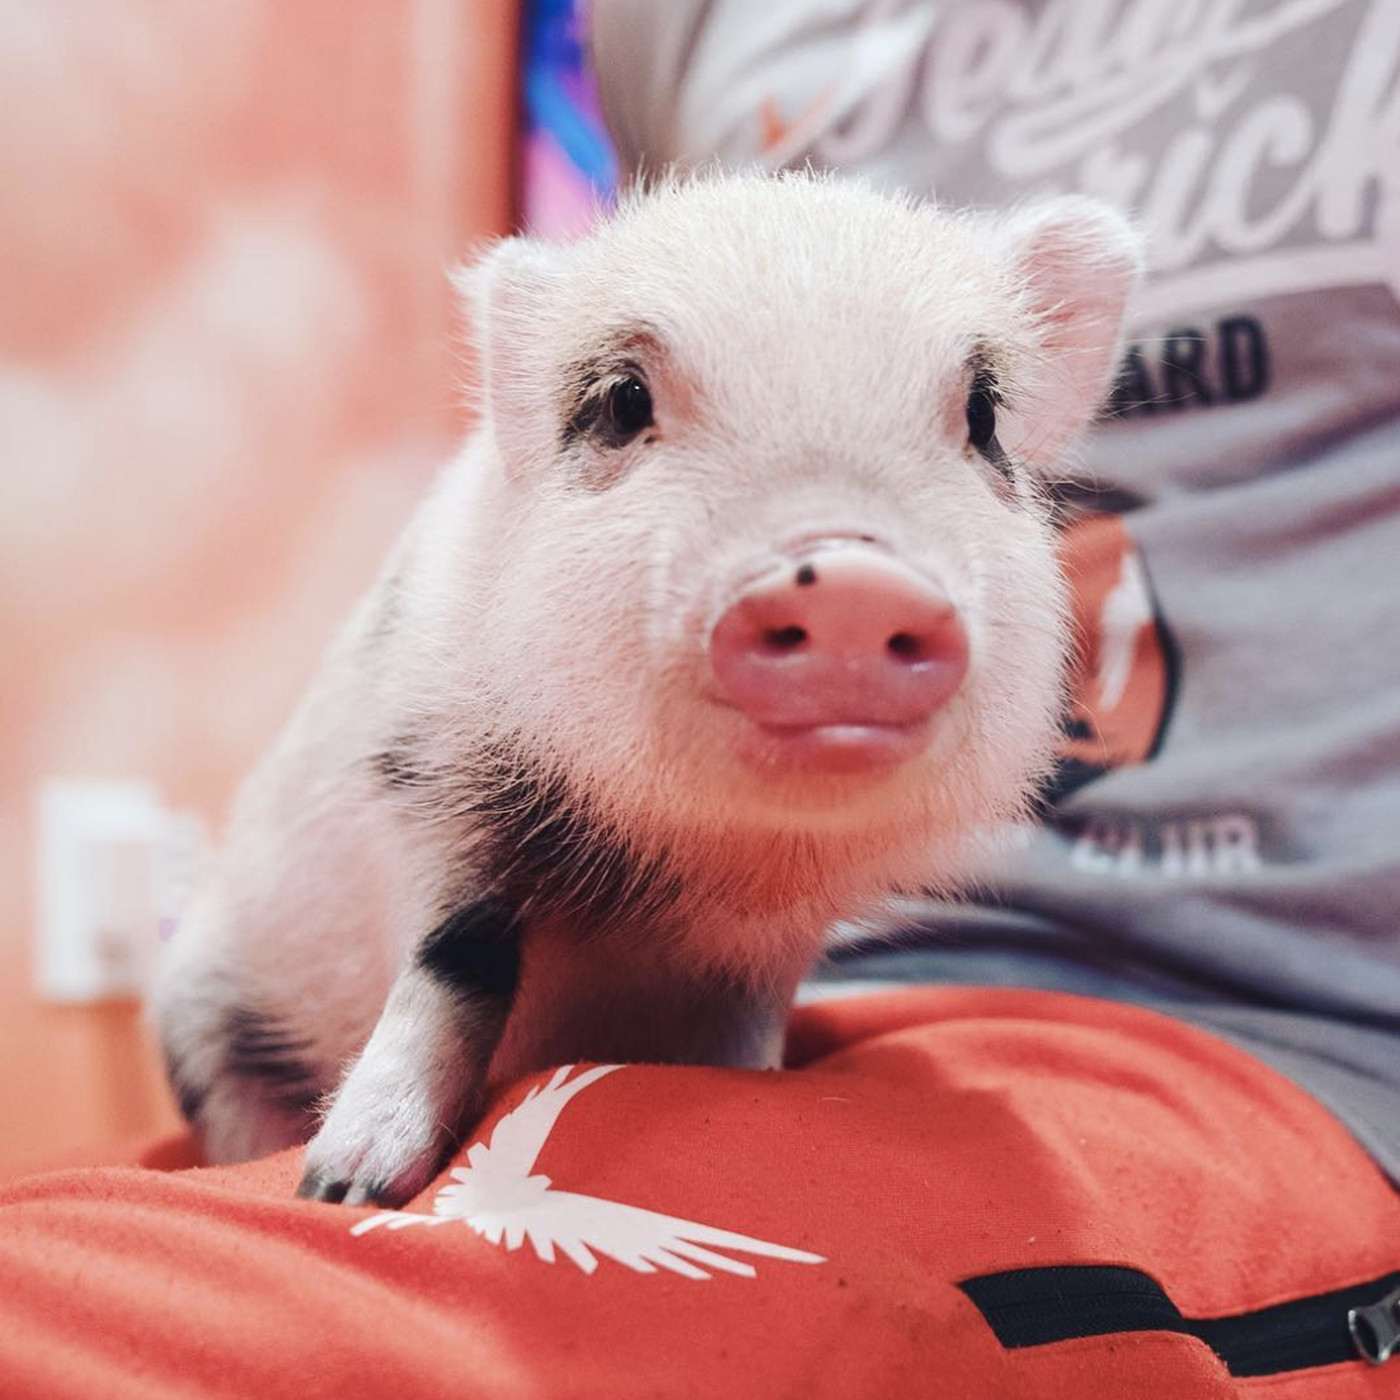 Teacup pigs are popular on YouTube and Instagram once again, but be